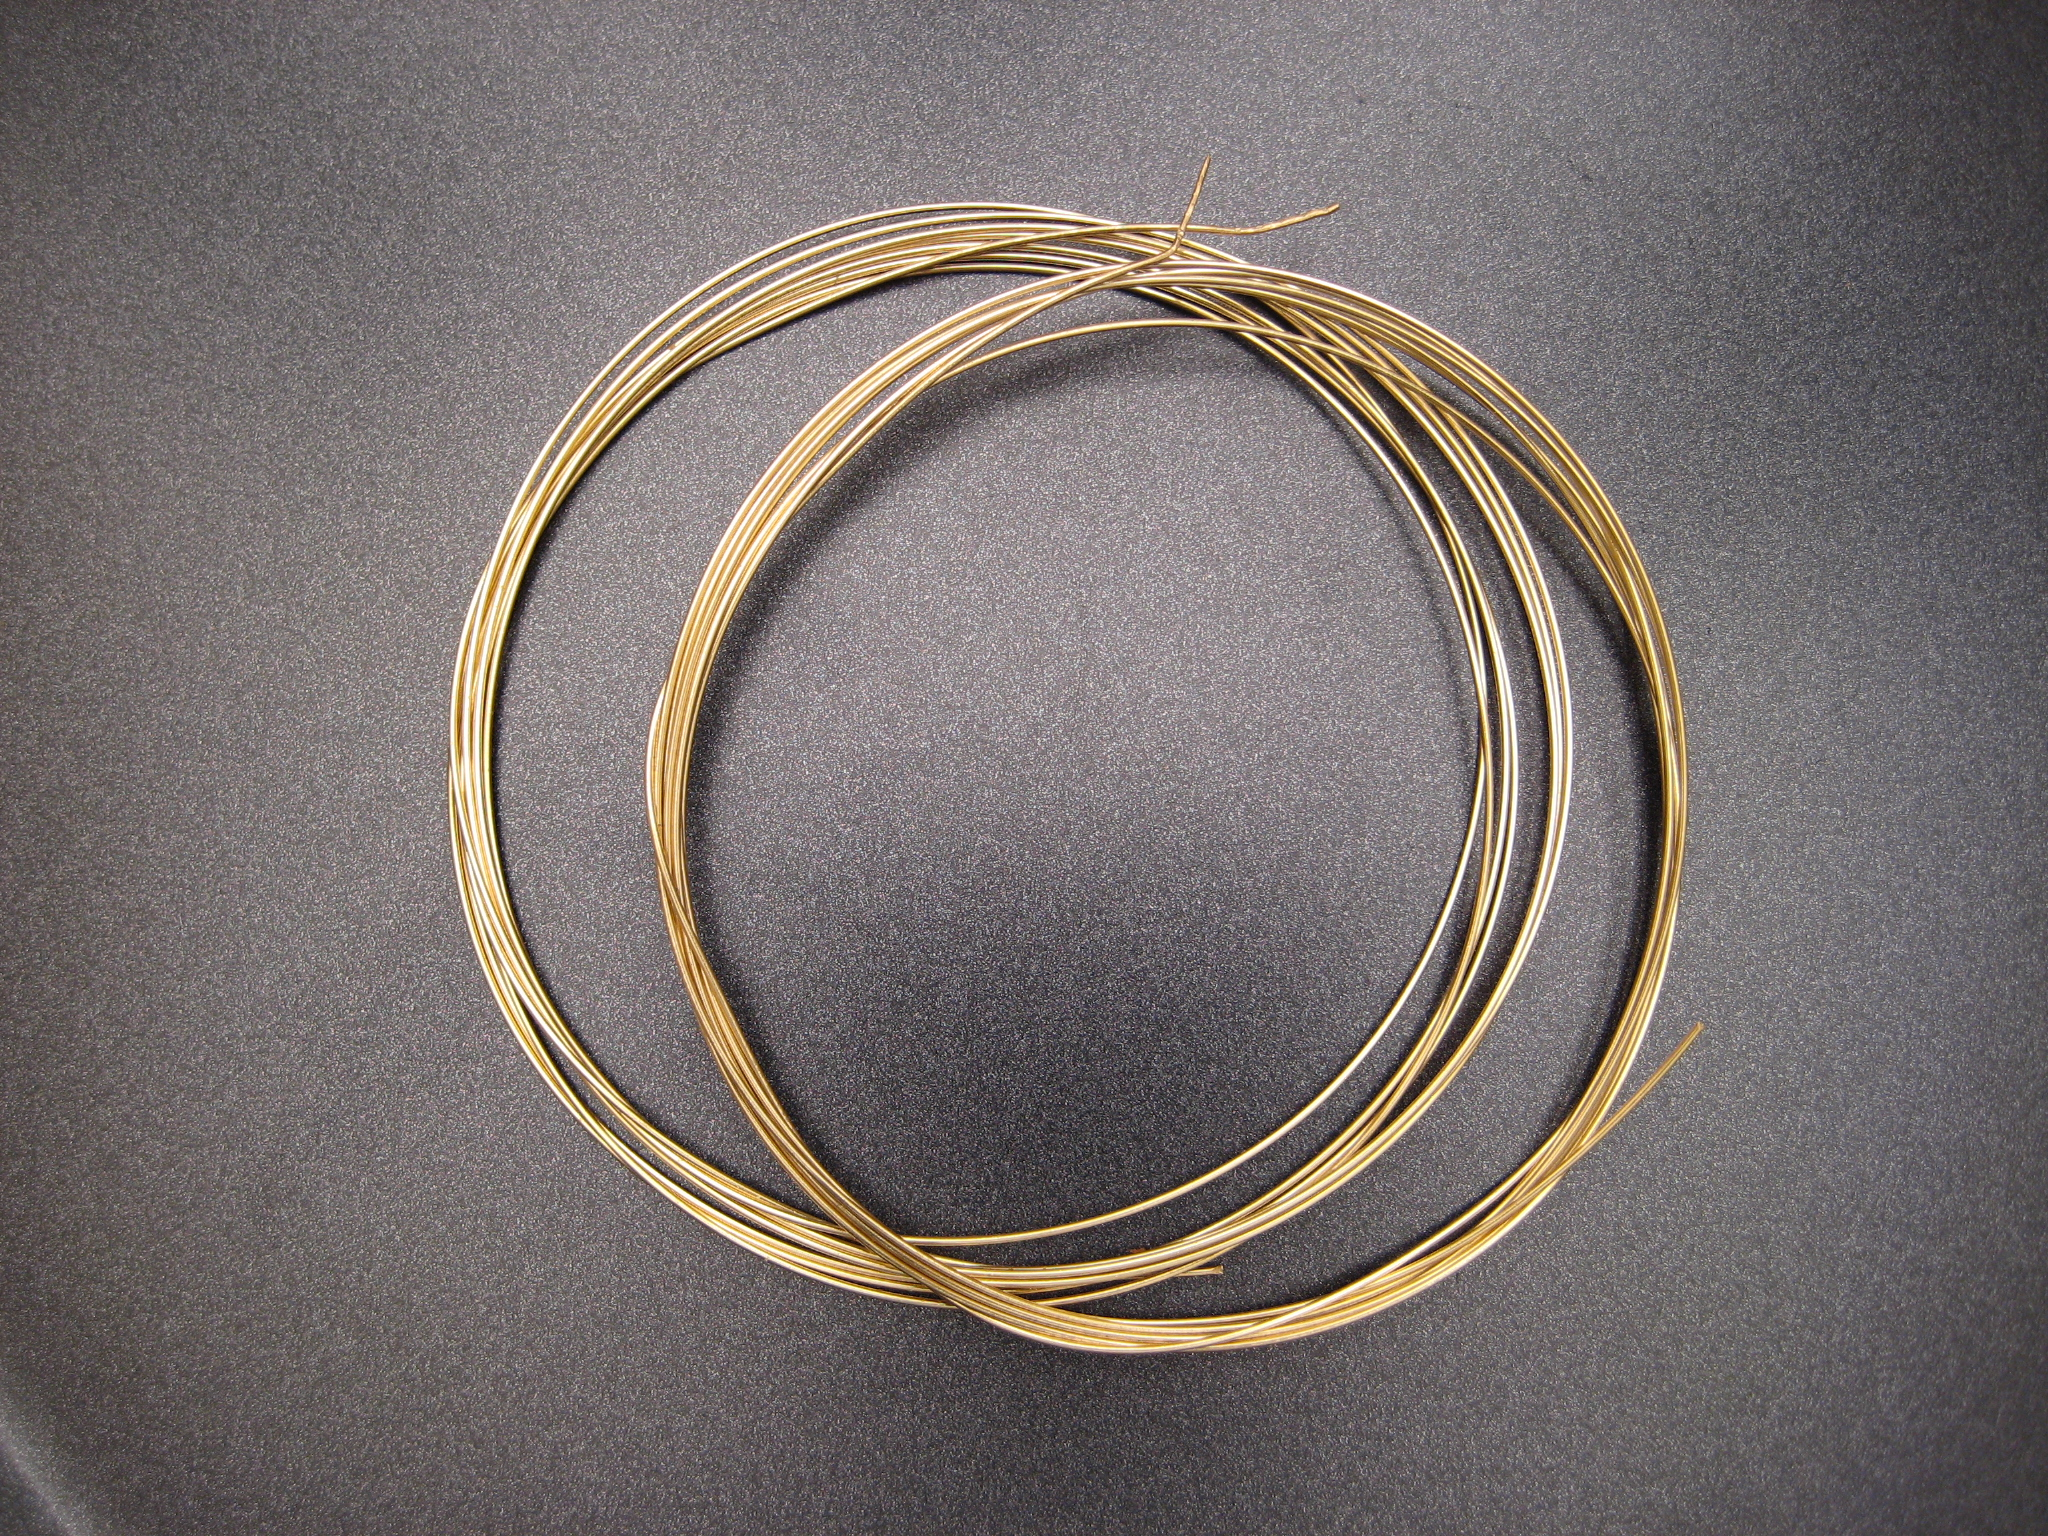 Spools of 18K gold wire after pulling and annealing.